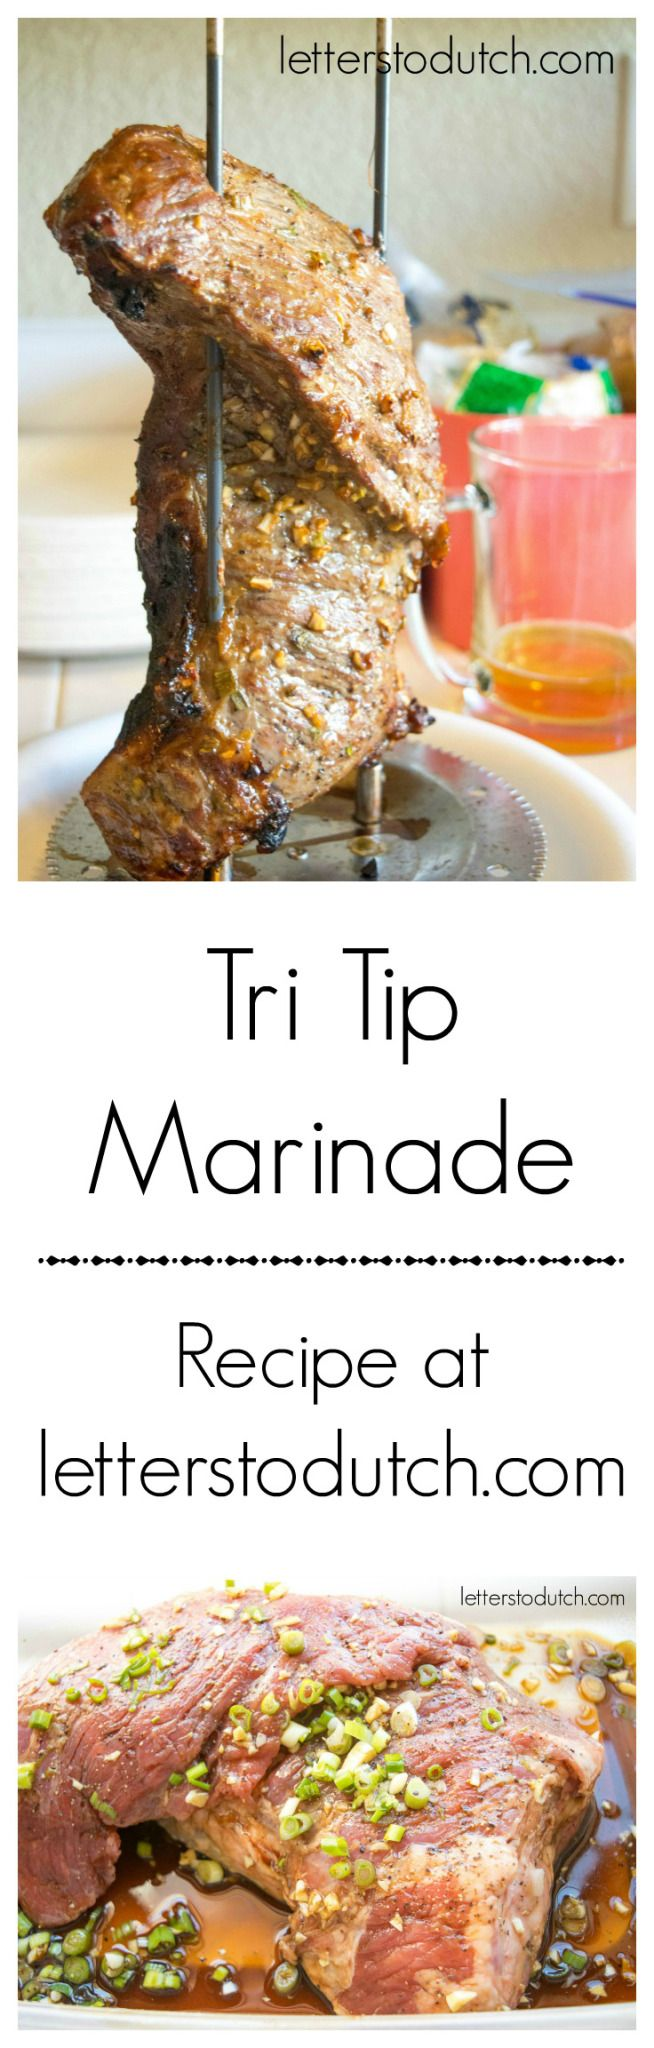 GOOD MARINADE FOR CROCK POT